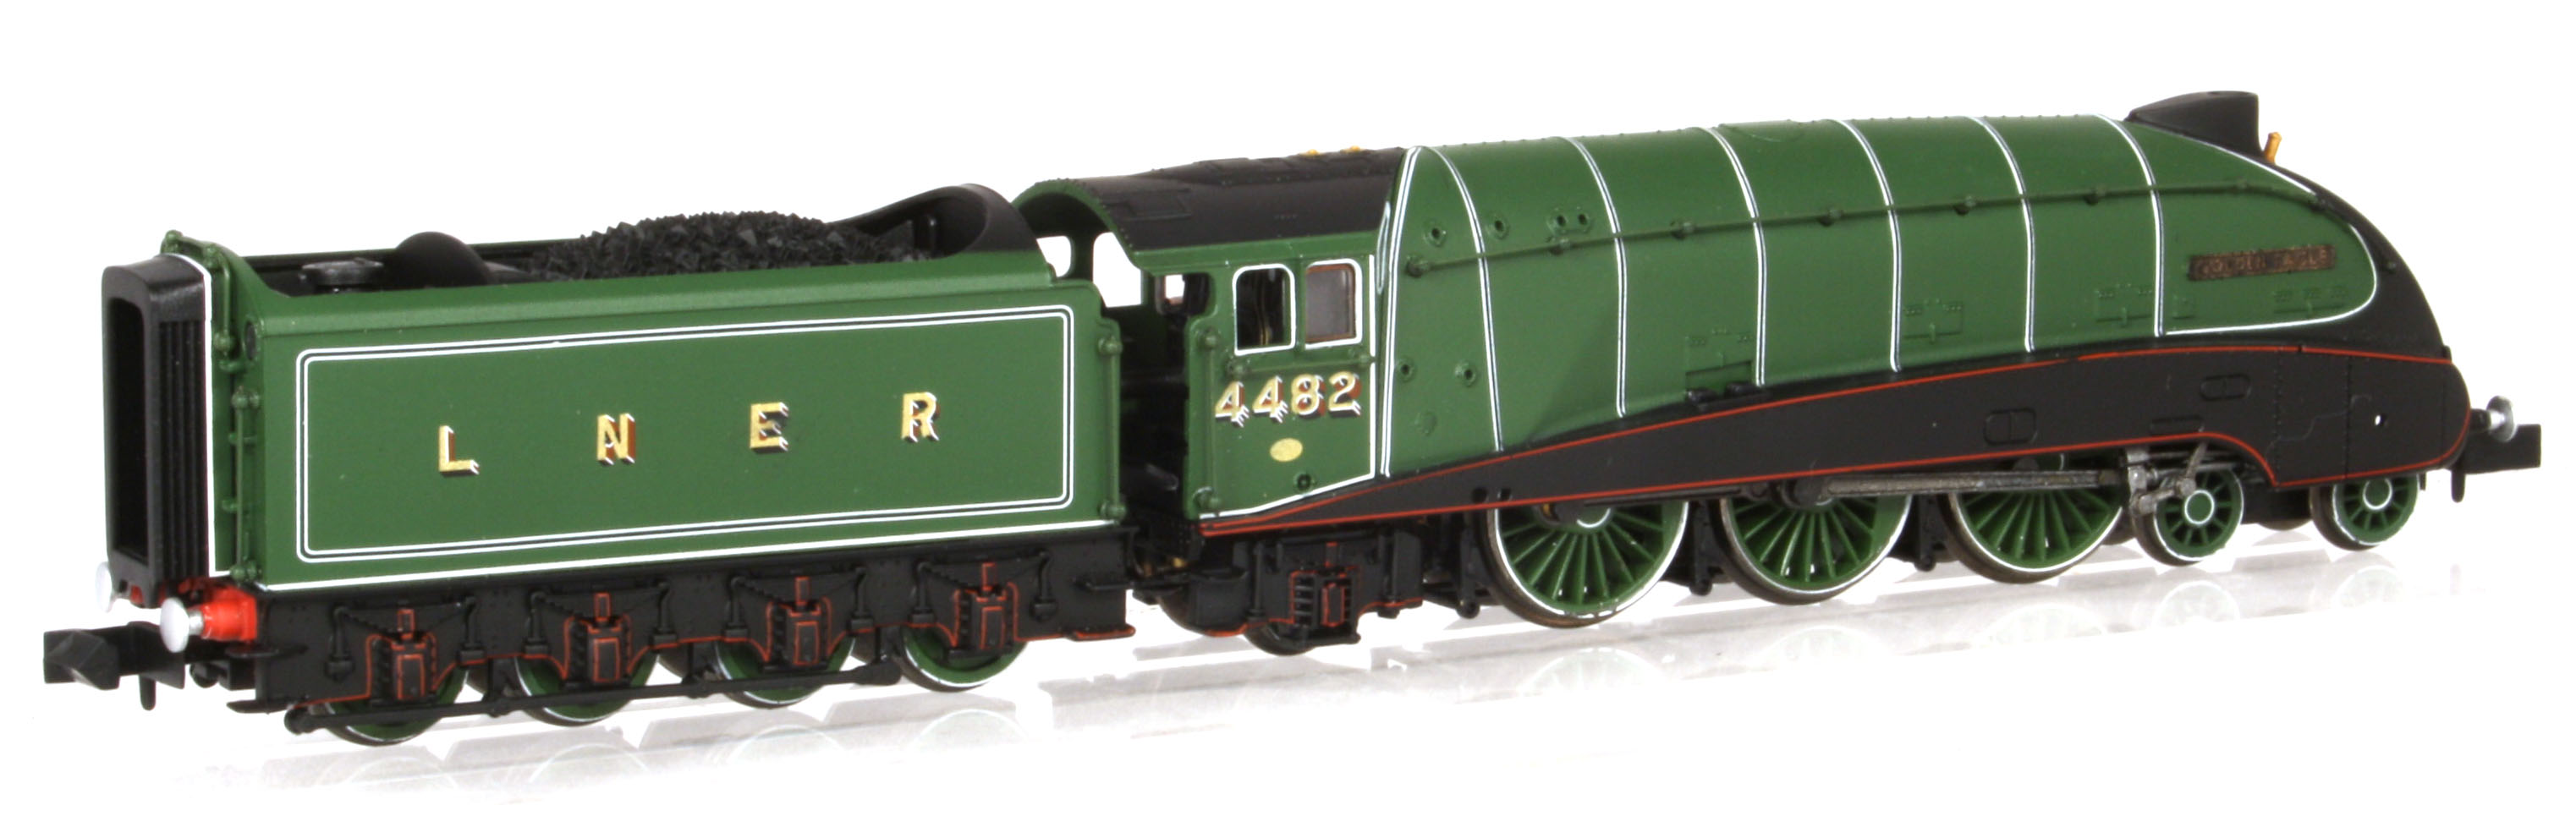 "2S-008-010D Dapol A4 Steam Locomotive number 4482 named ""Golden Eagle"" in LNER Green livery with valances"